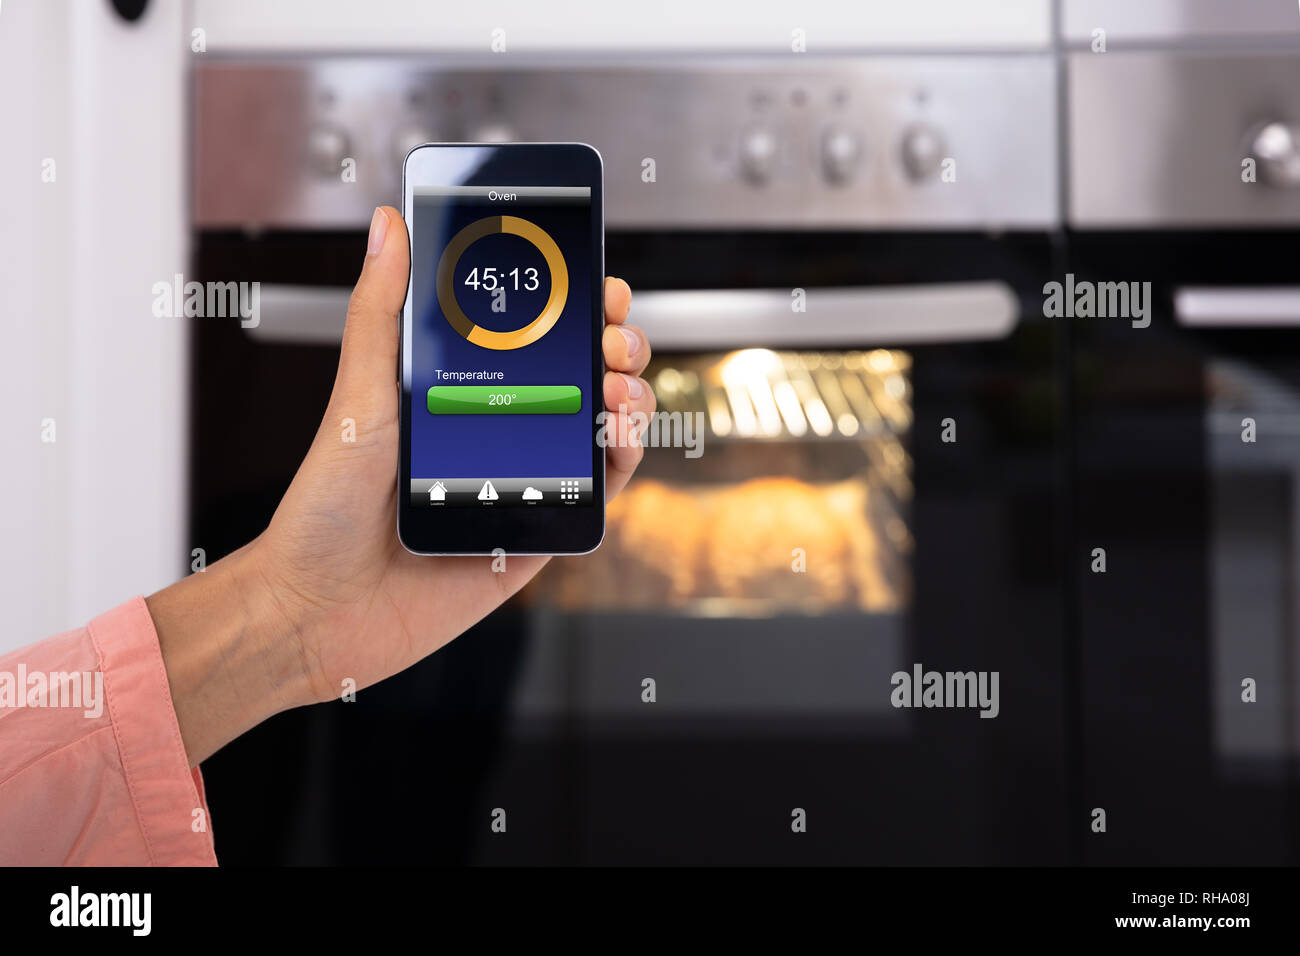 Close-up Of Woman's Hand Operating An Oven Application With Mobile Phone App - Stock Image